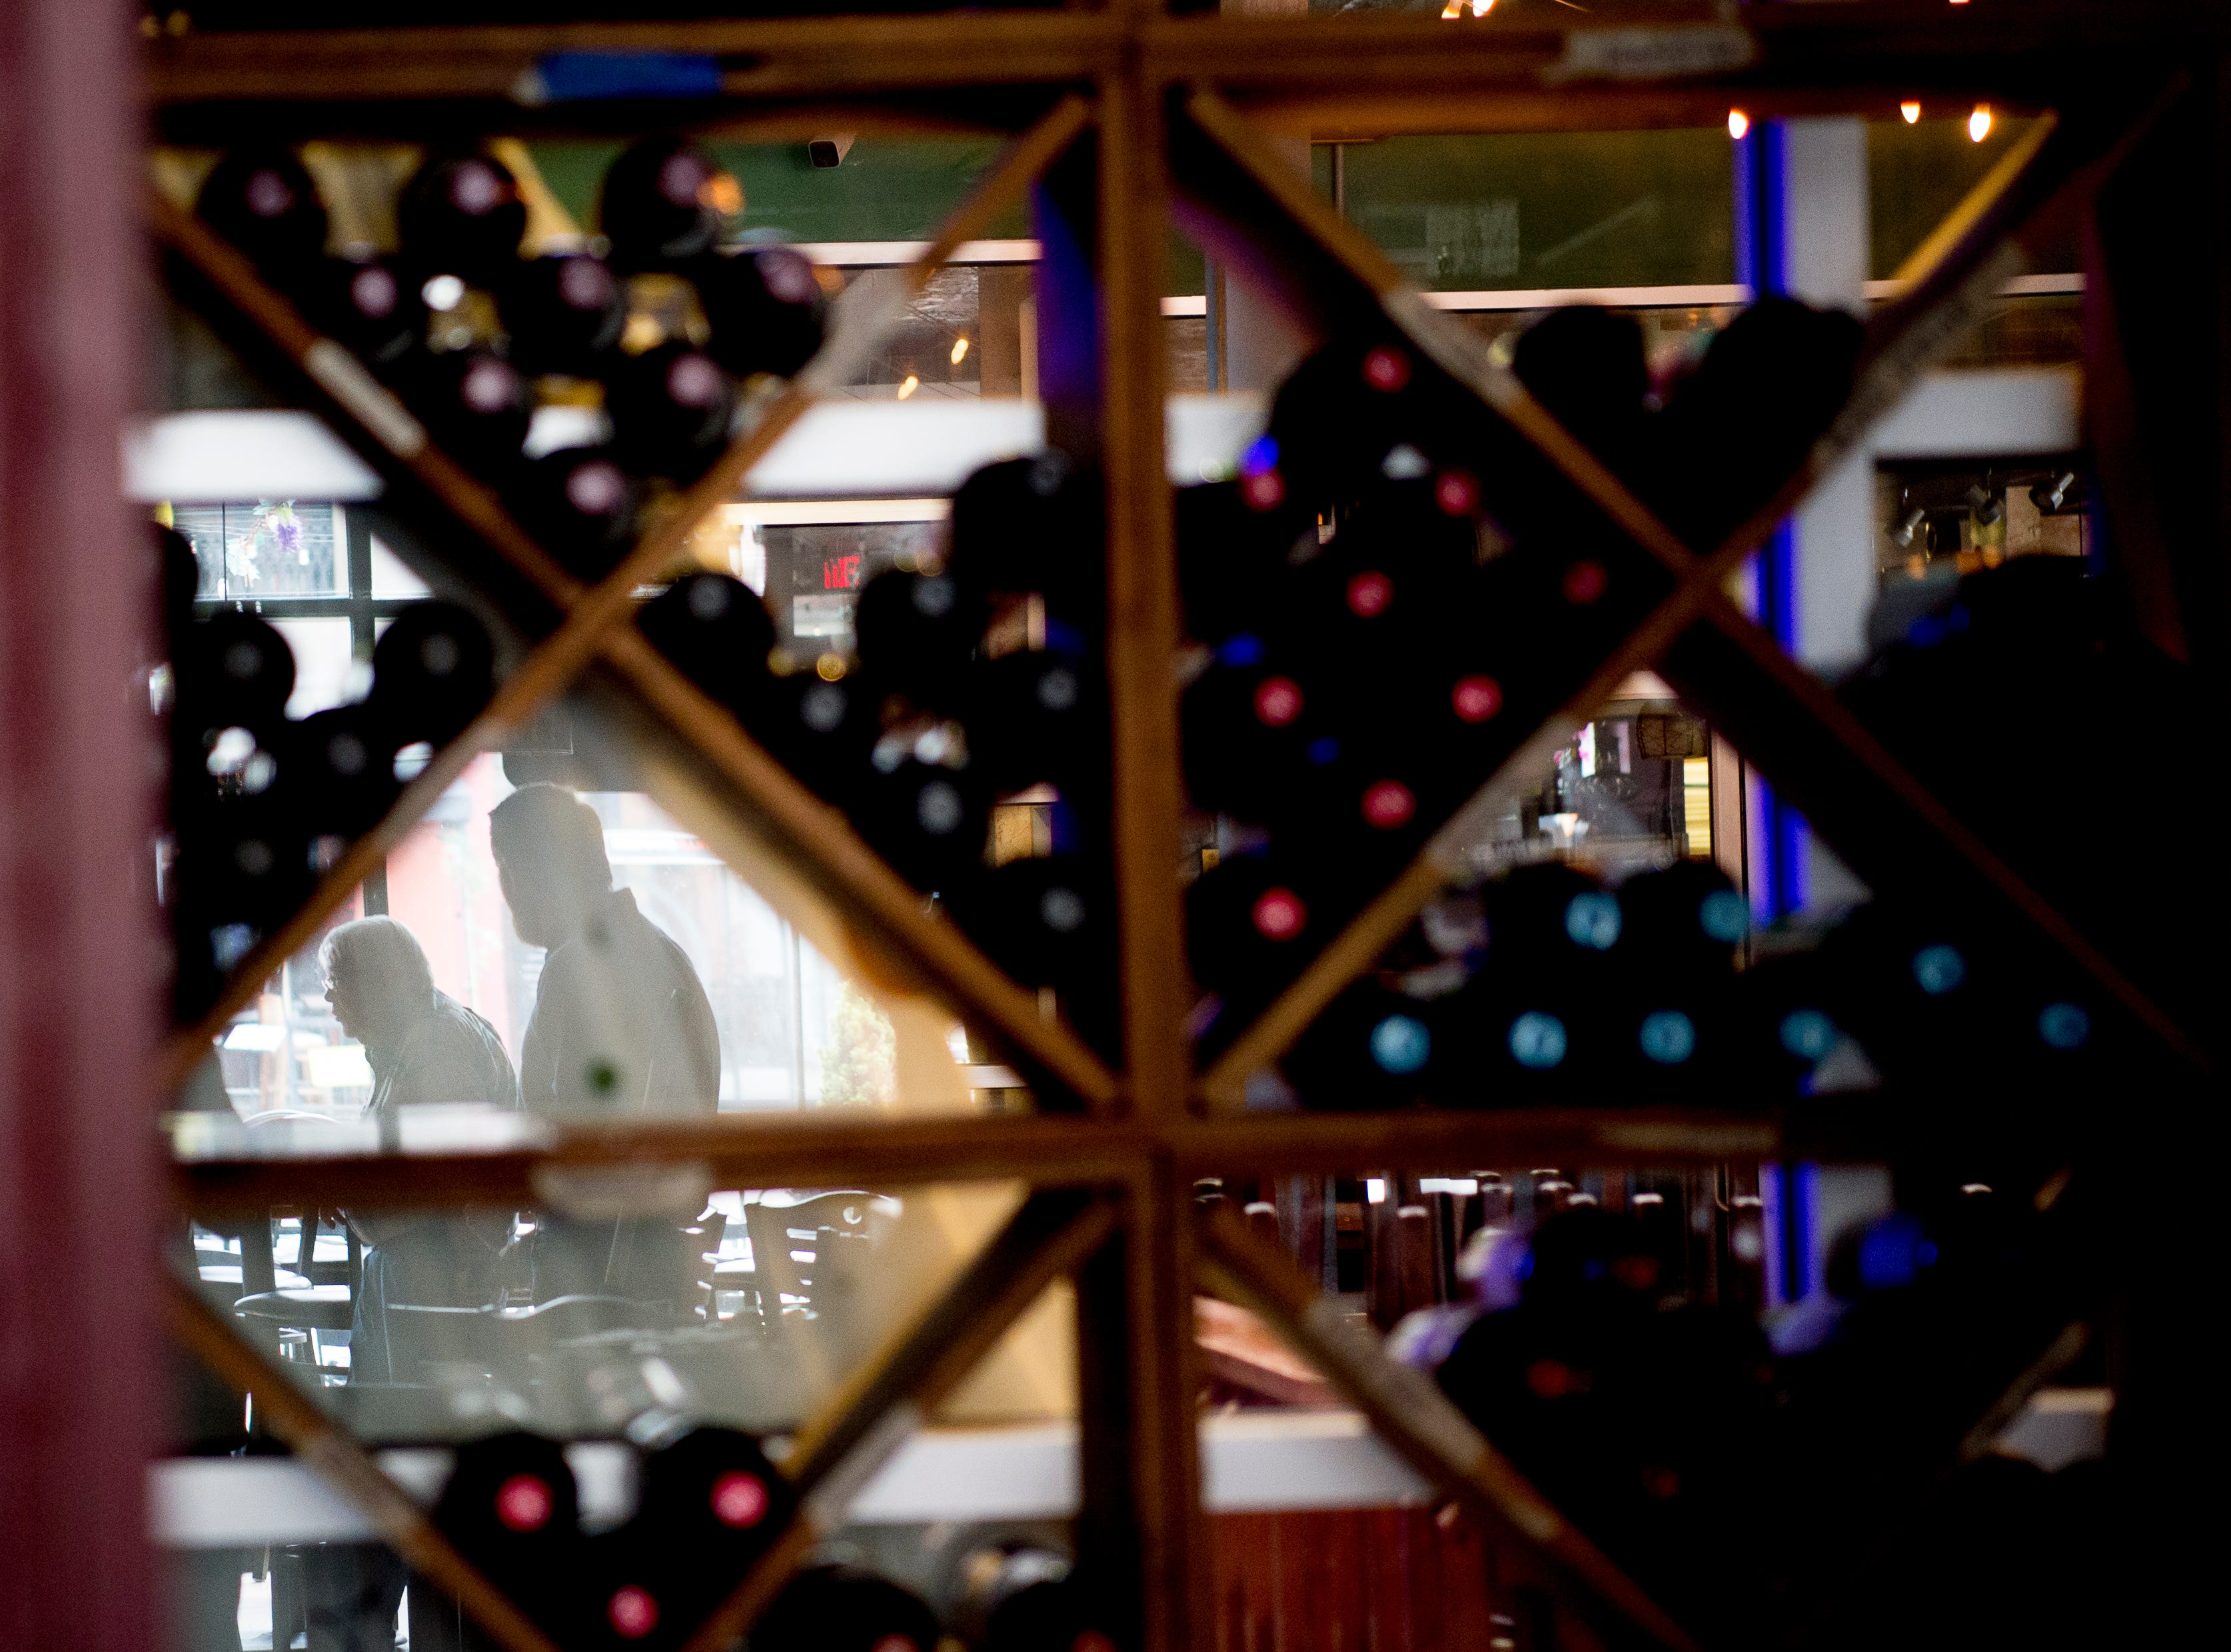 Wine sits on shelves in the back area of the bar in Uncorked in Knoxville, Tennessee on Friday, February 15, 2019. Owner Scott West is replacing Uncorked with The Lost Tavern, a true crime-themed bar featuring upscale bar food, music from the 1940s in a dim, intimate setting.